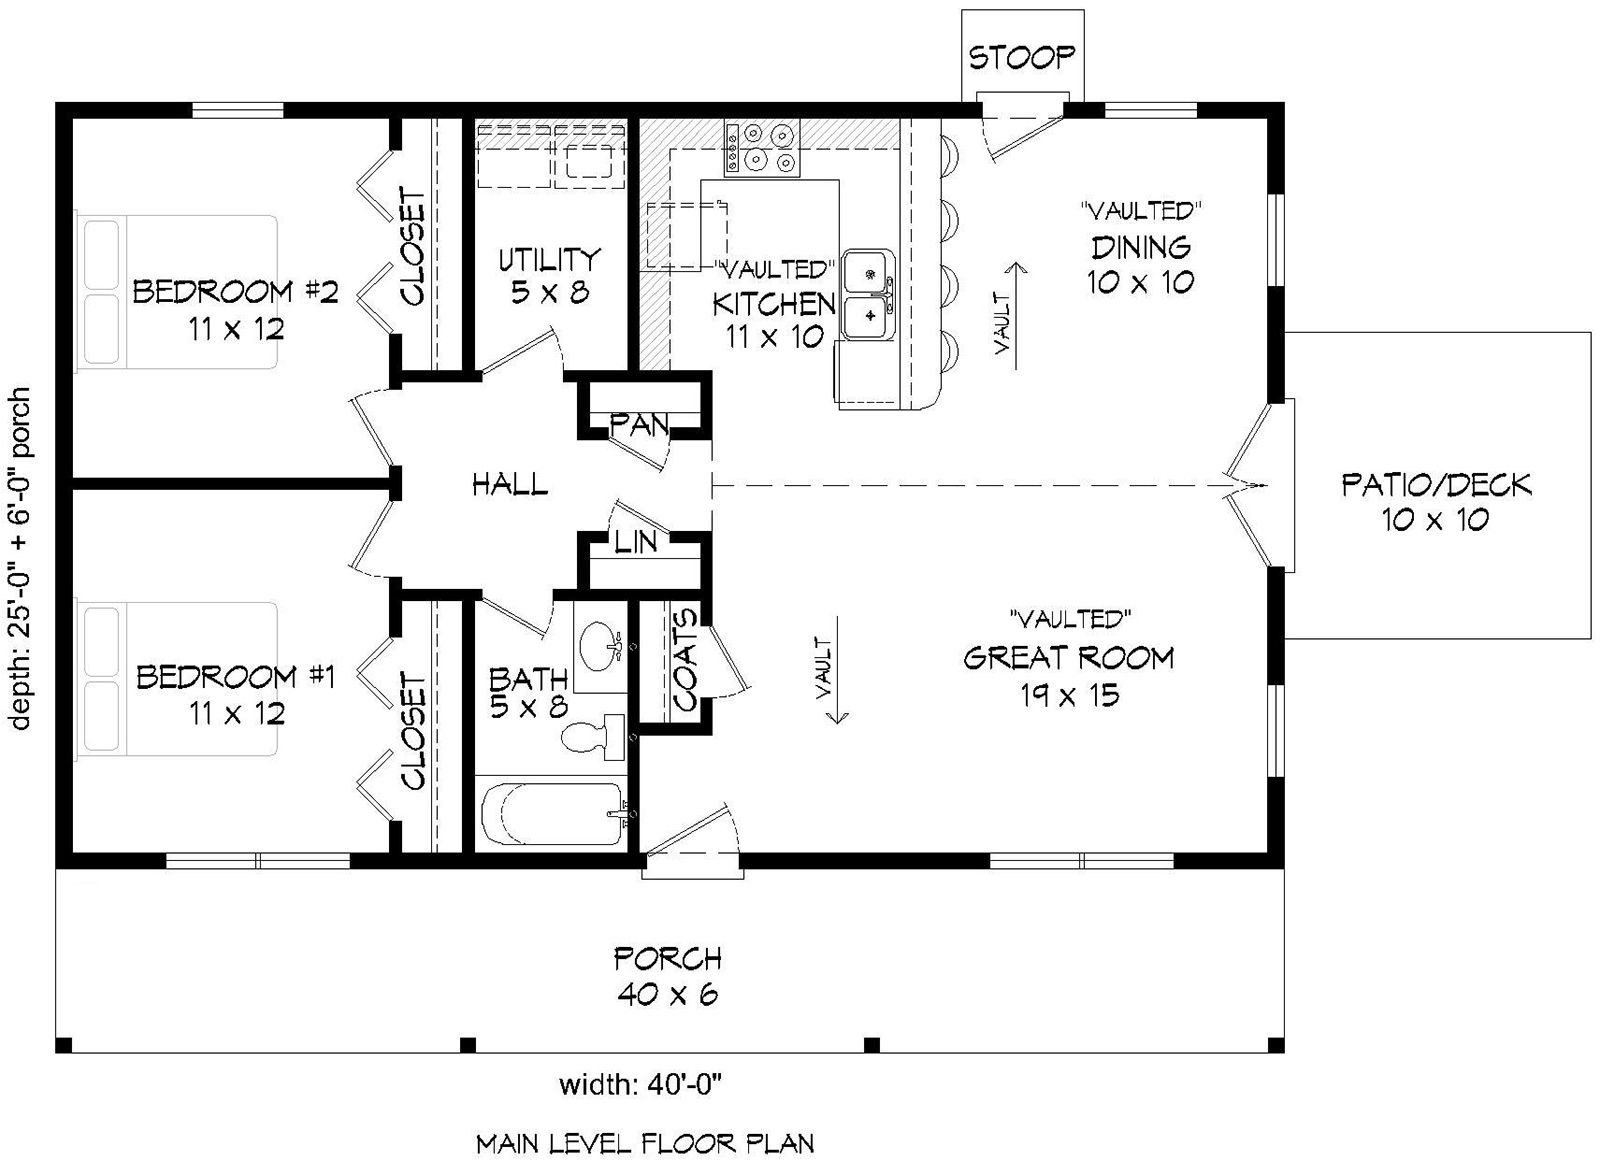 House Plan 940 00129 Country Plan 1 000 Square Feet 2 Bedrooms 1 Bathroom Country Style House Plans Floor Plans Ranch Pole Barn House Plans